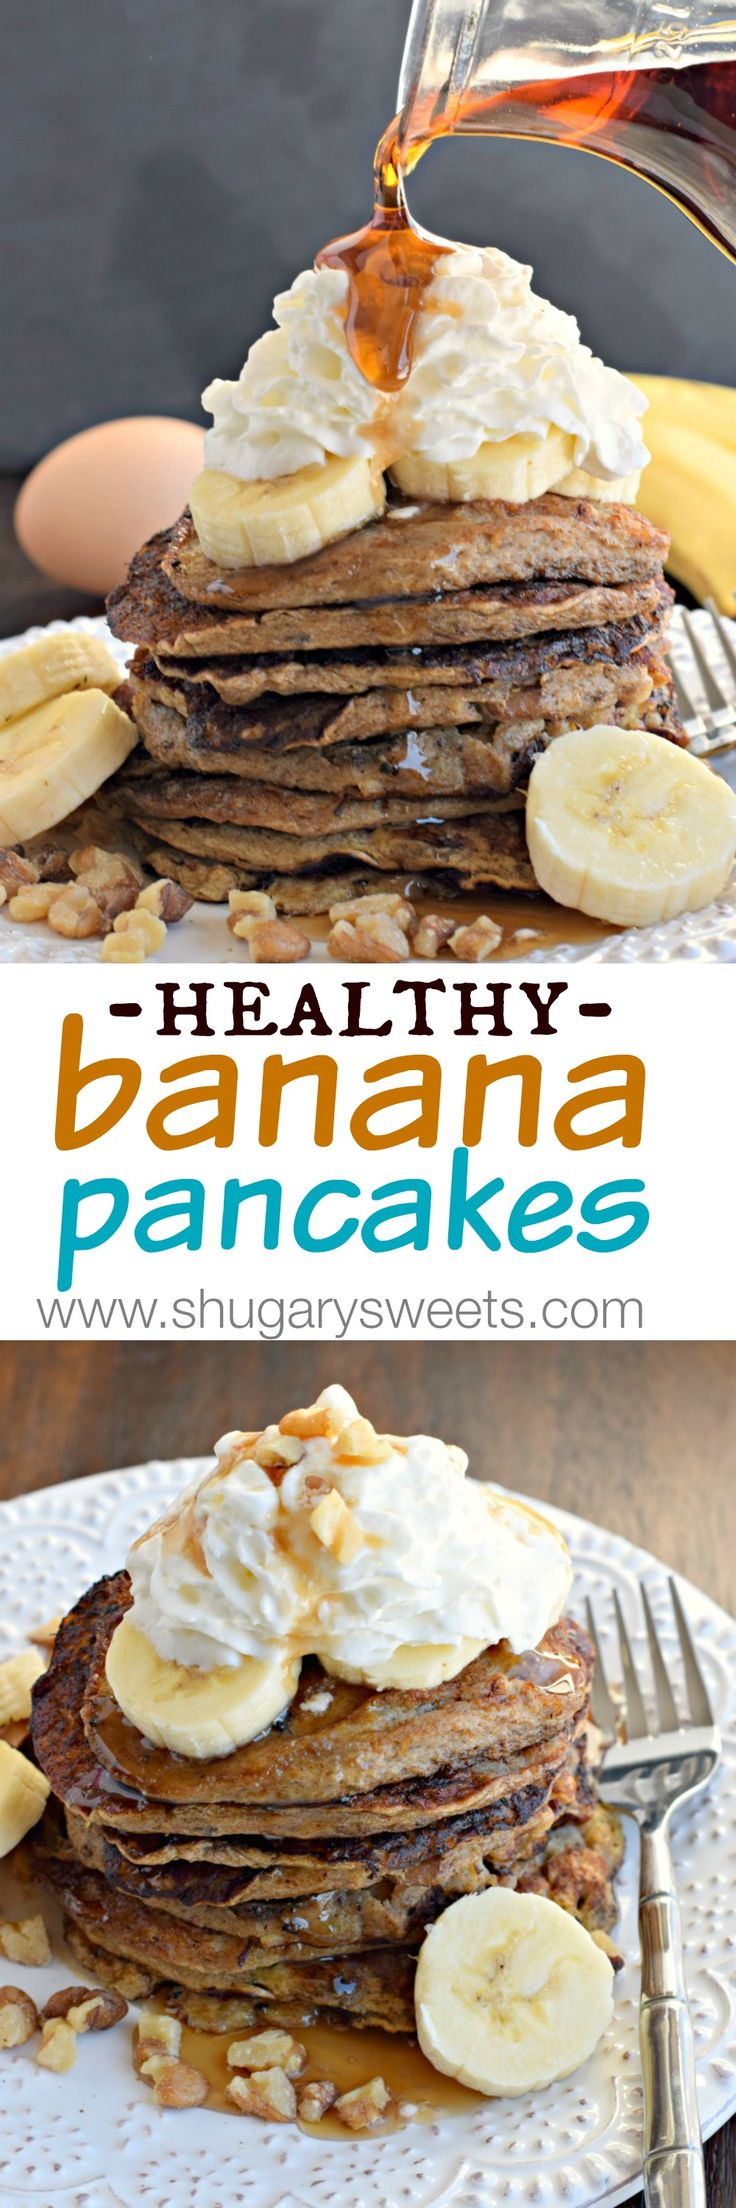 Healthy Banana Pancakes with 4 simple ingredients (no flour, no sugar)! #thinkfisher